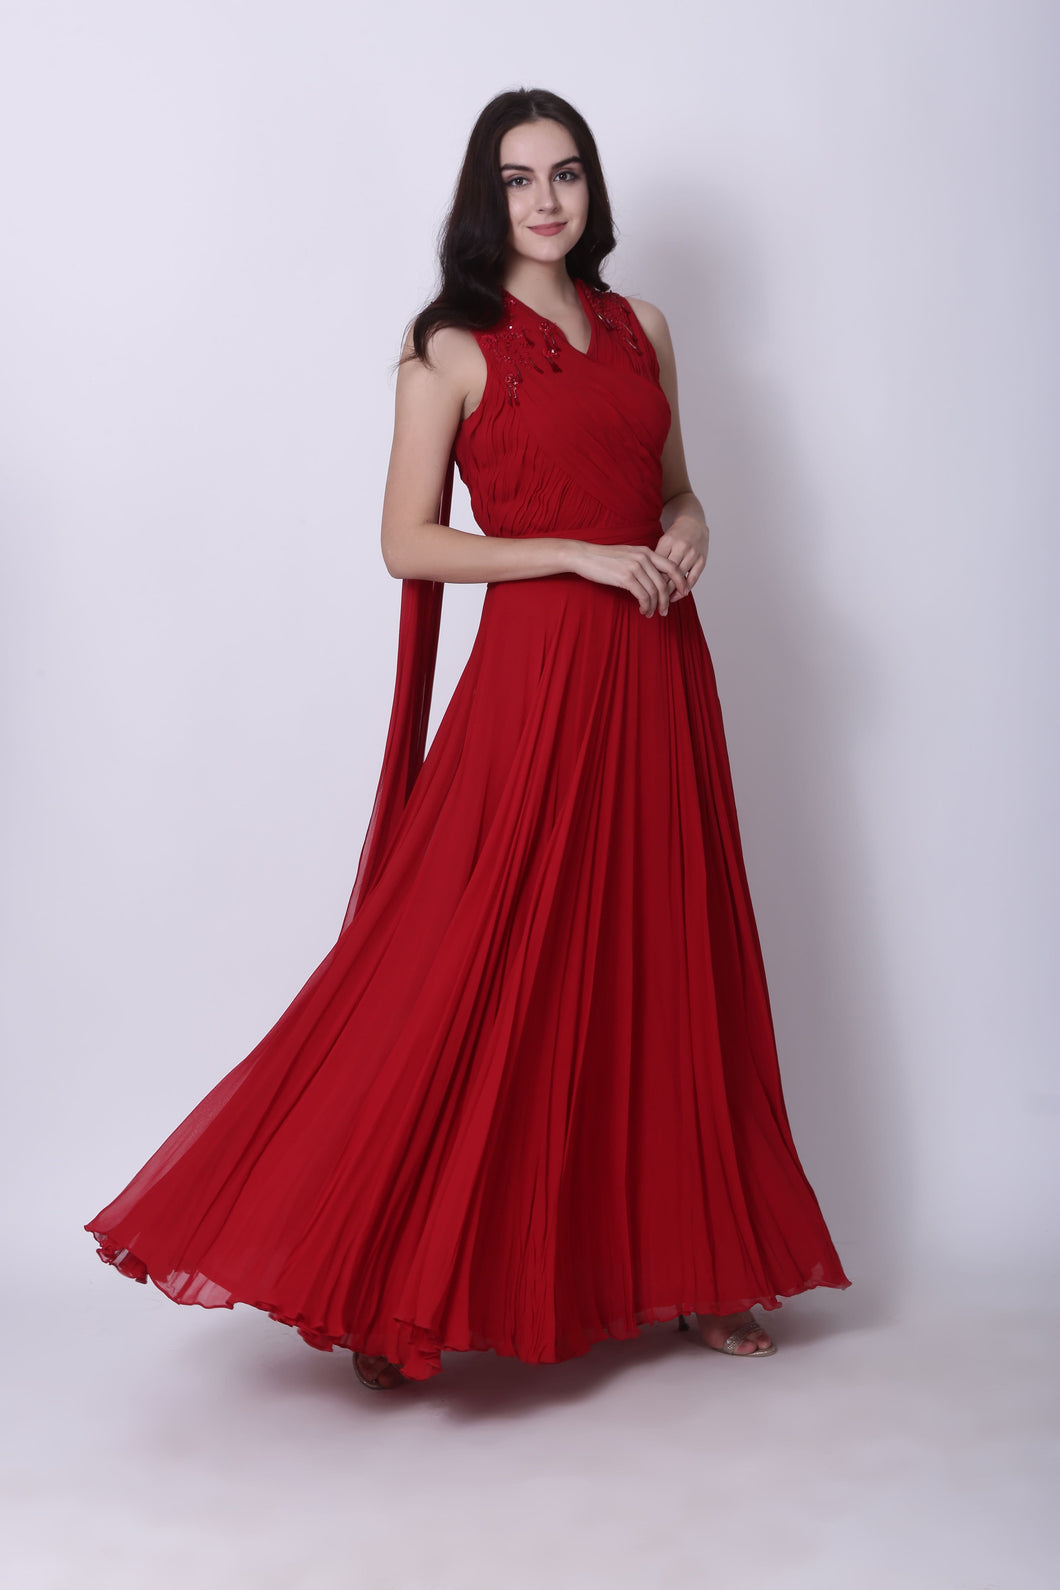 Draped Red Gown